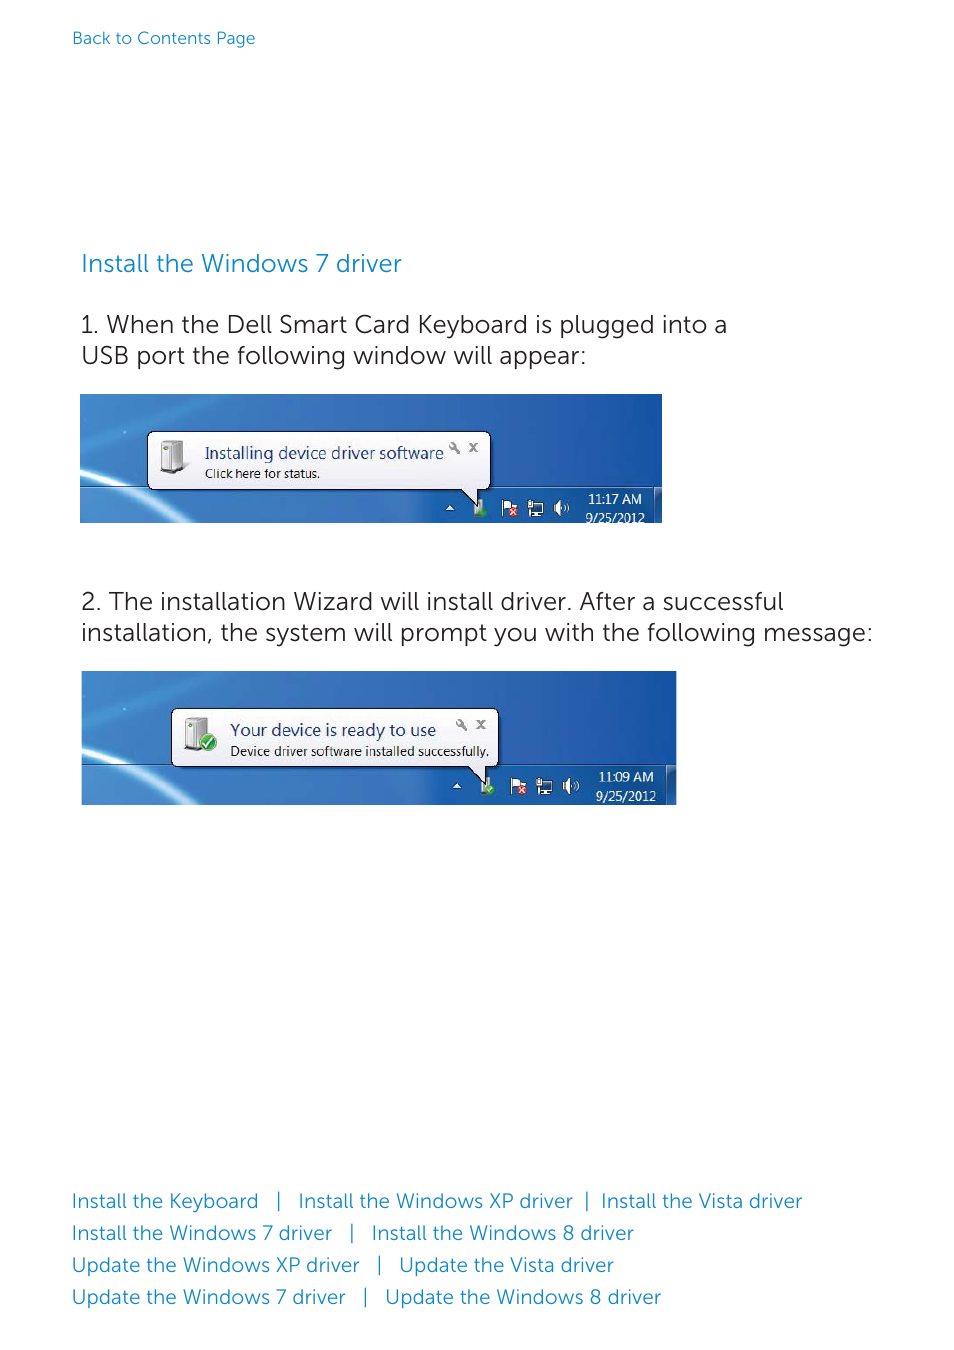 Install the windows 7 driver | Dell Smartcard Keyboard KB813 User